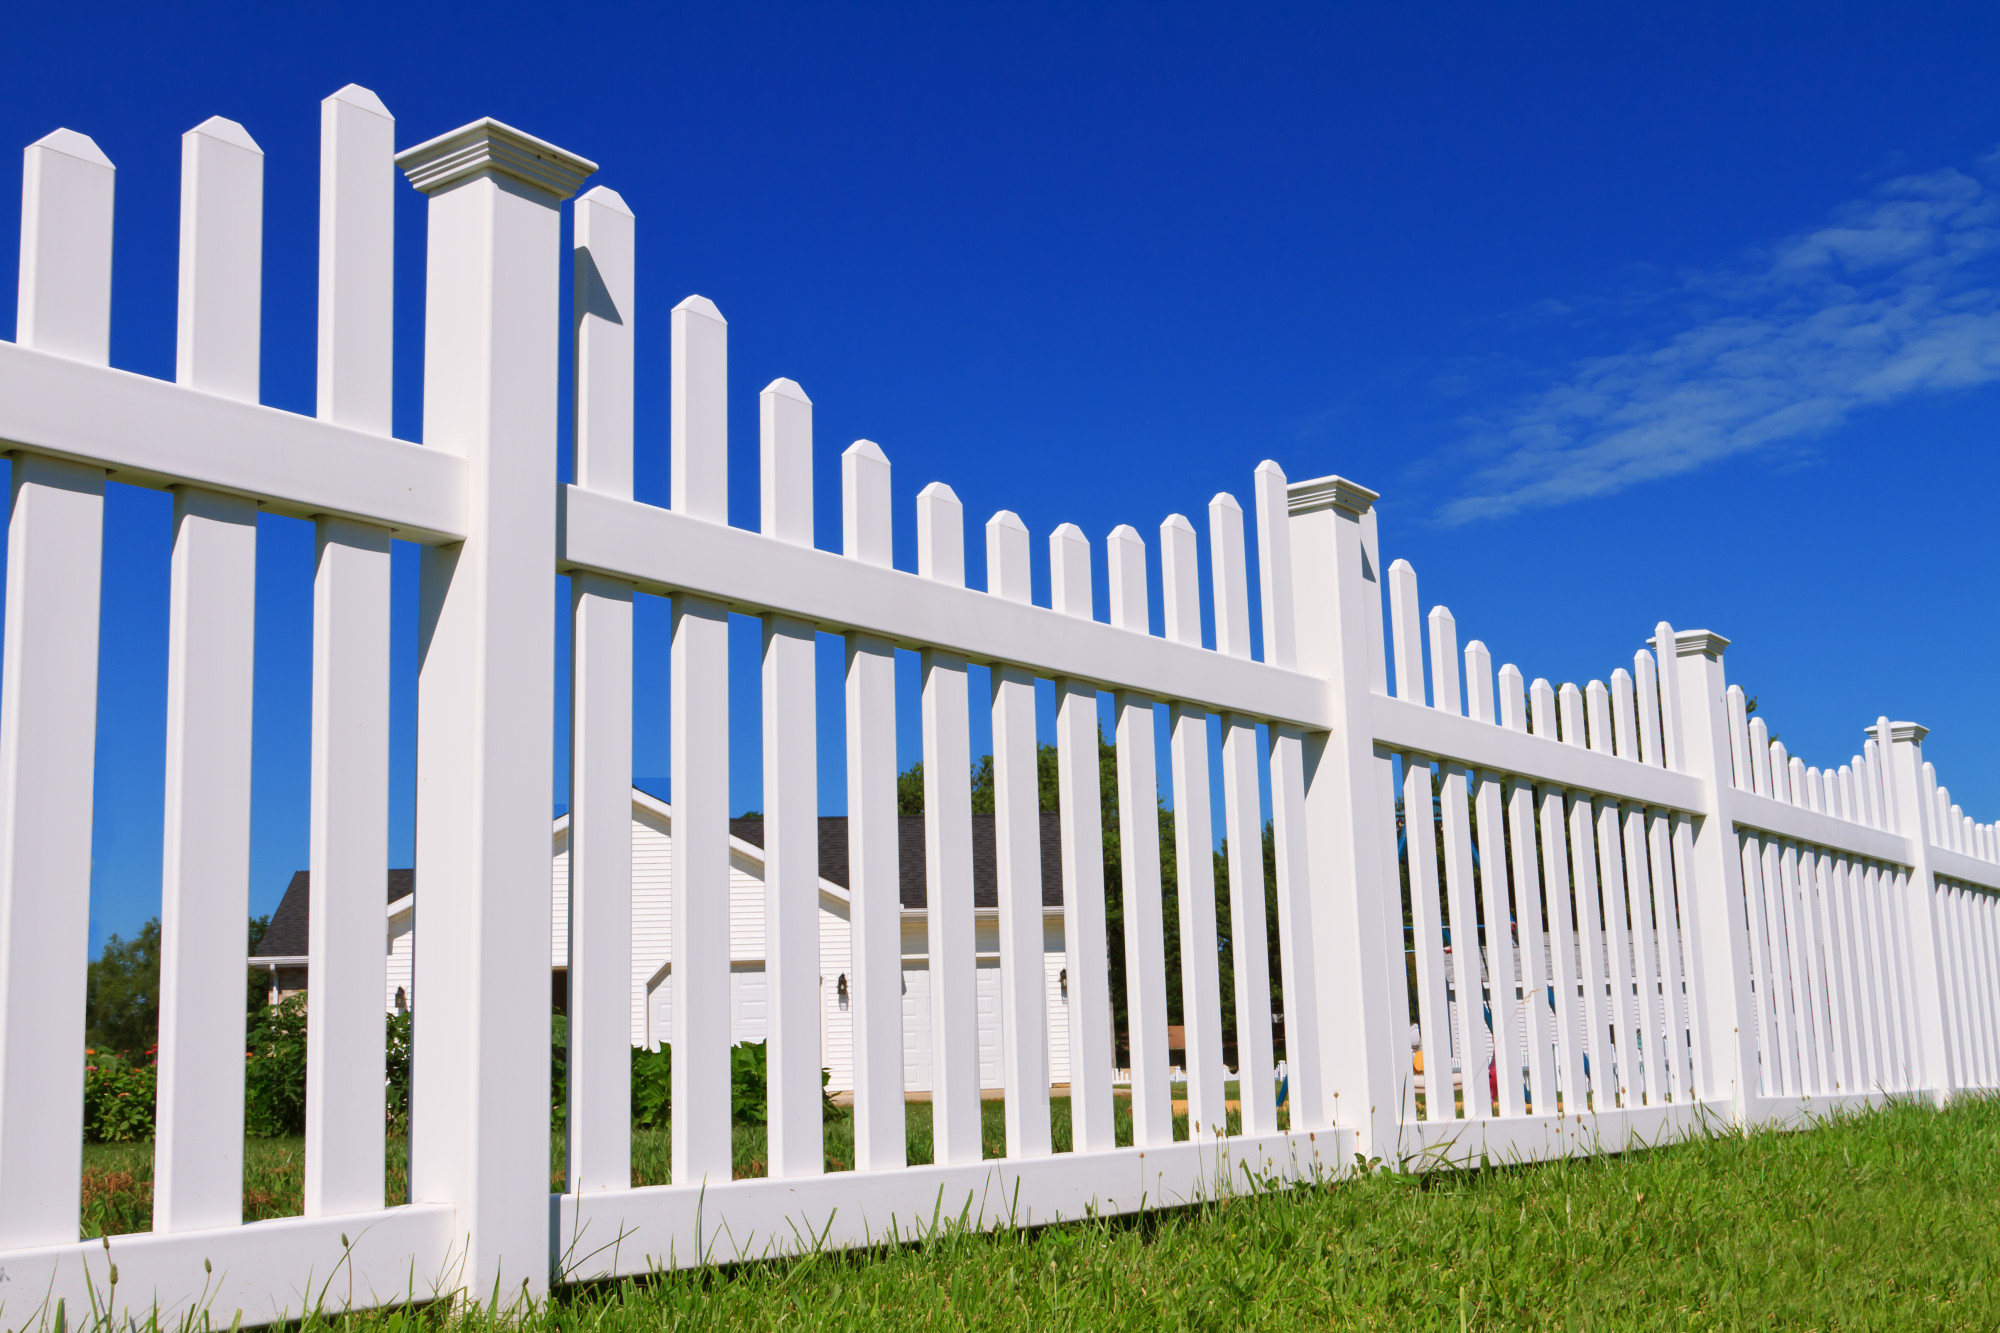 Wood vs Vinyl Fencing: Which Is Best for You?